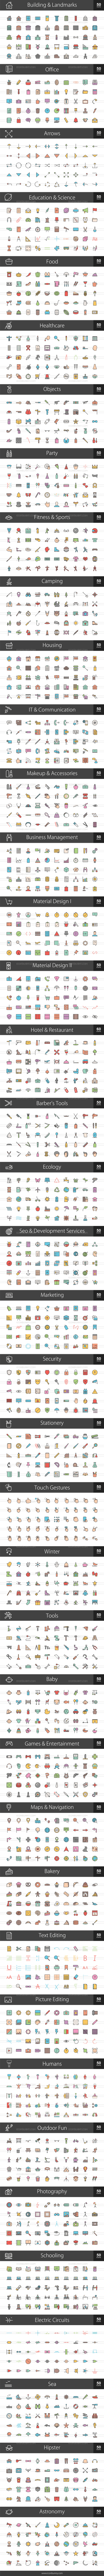 2010 Line Multicolor Filled Icons Bundle - Overview - IconBunny